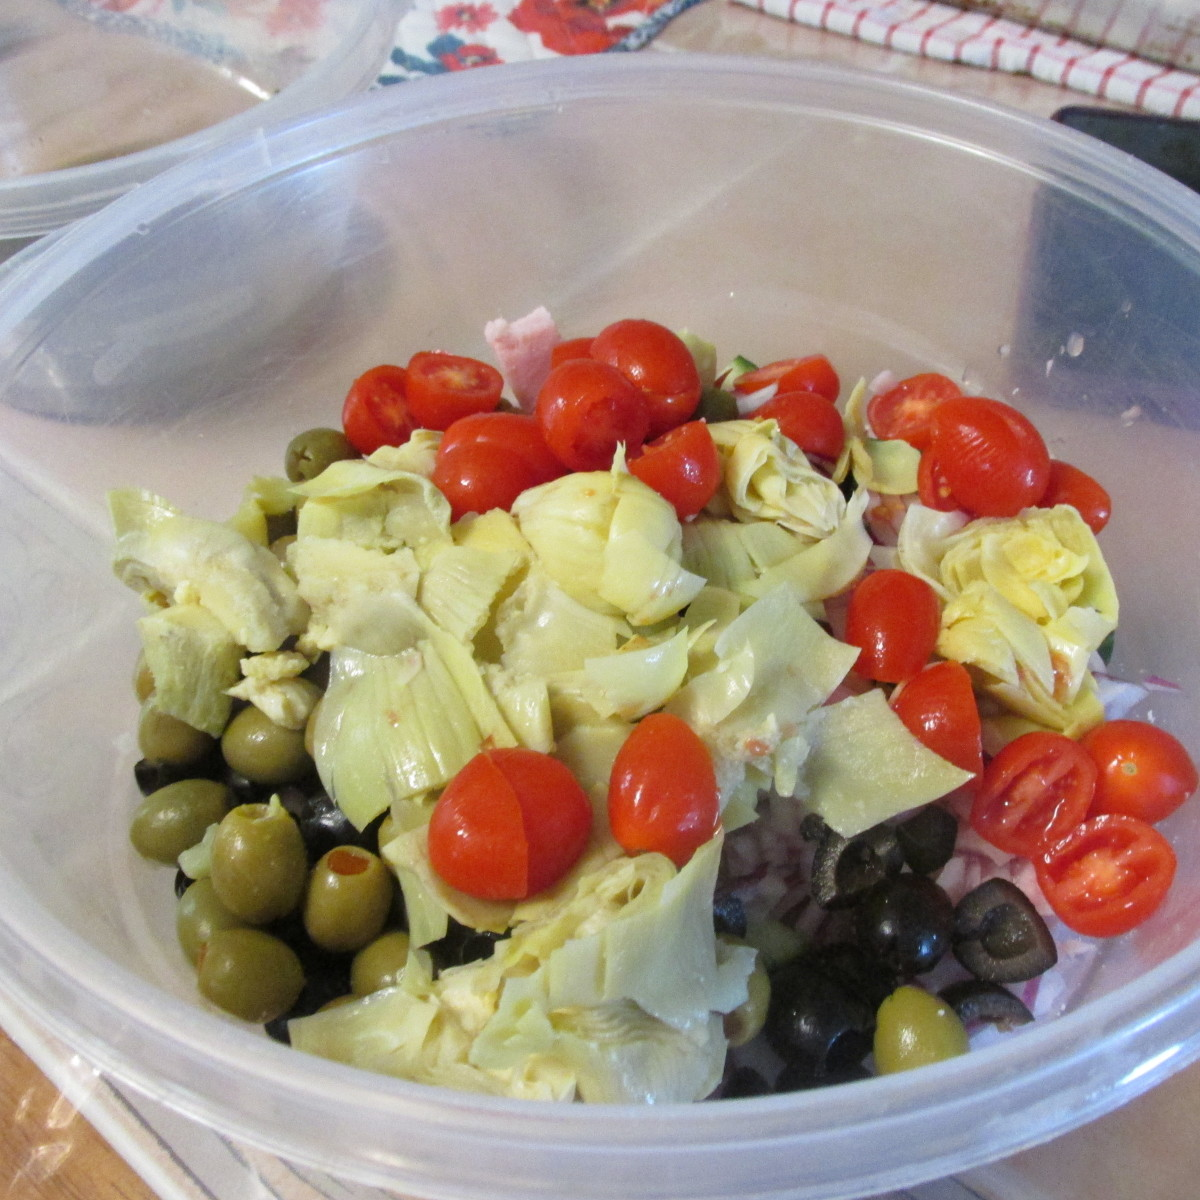 All the salad ingredients before adding vinaigrette